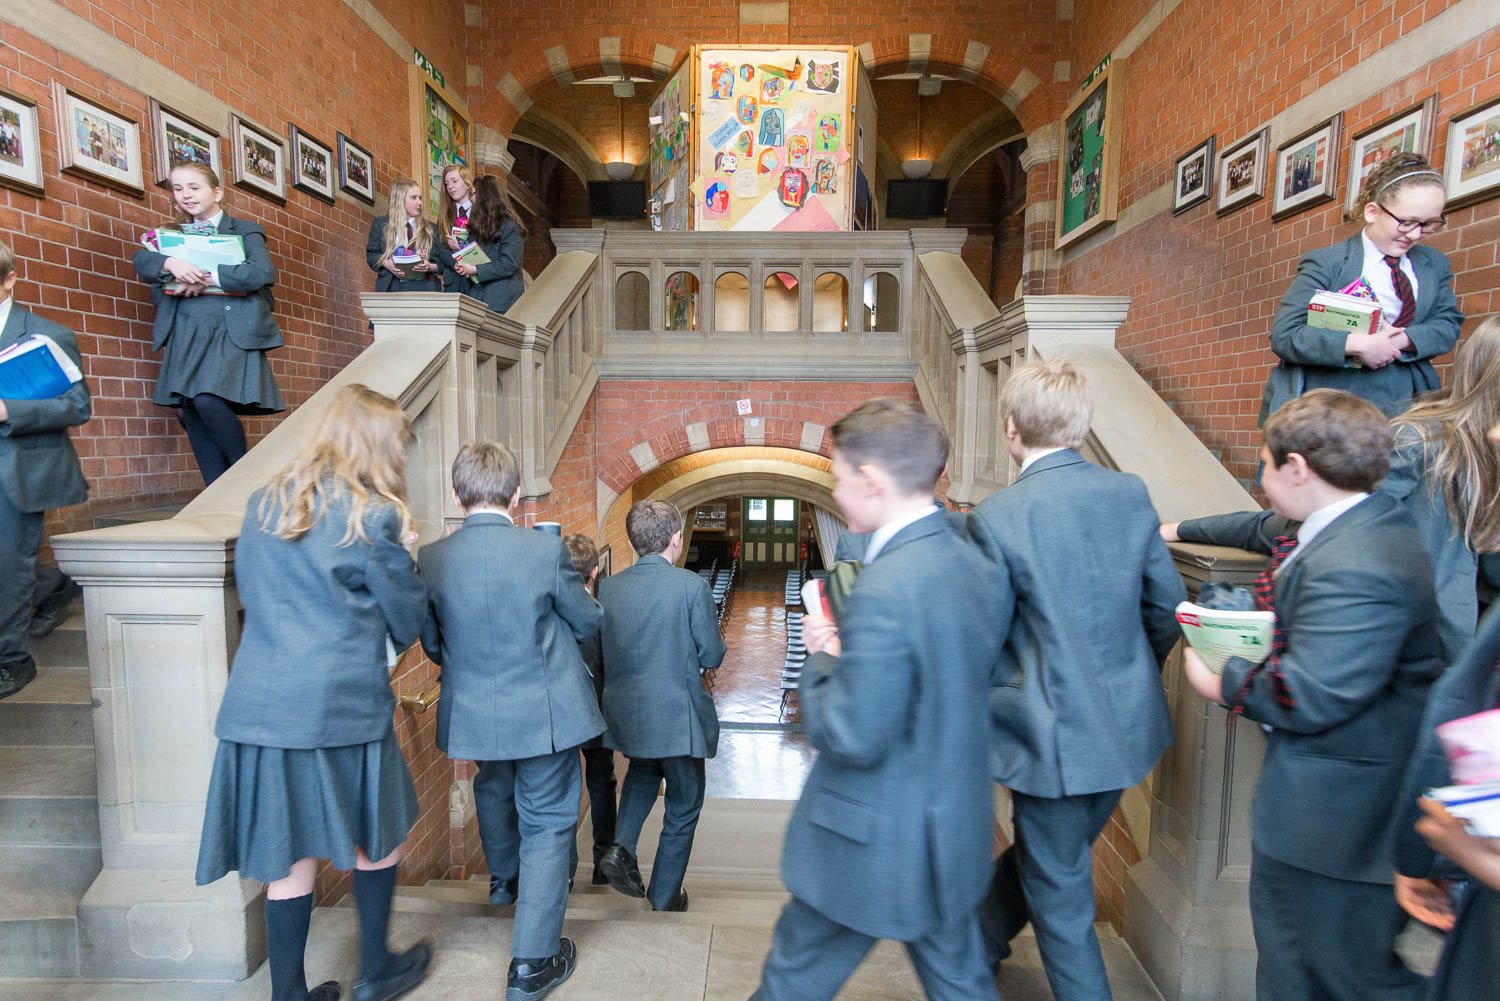 Hymer's College staircase with students